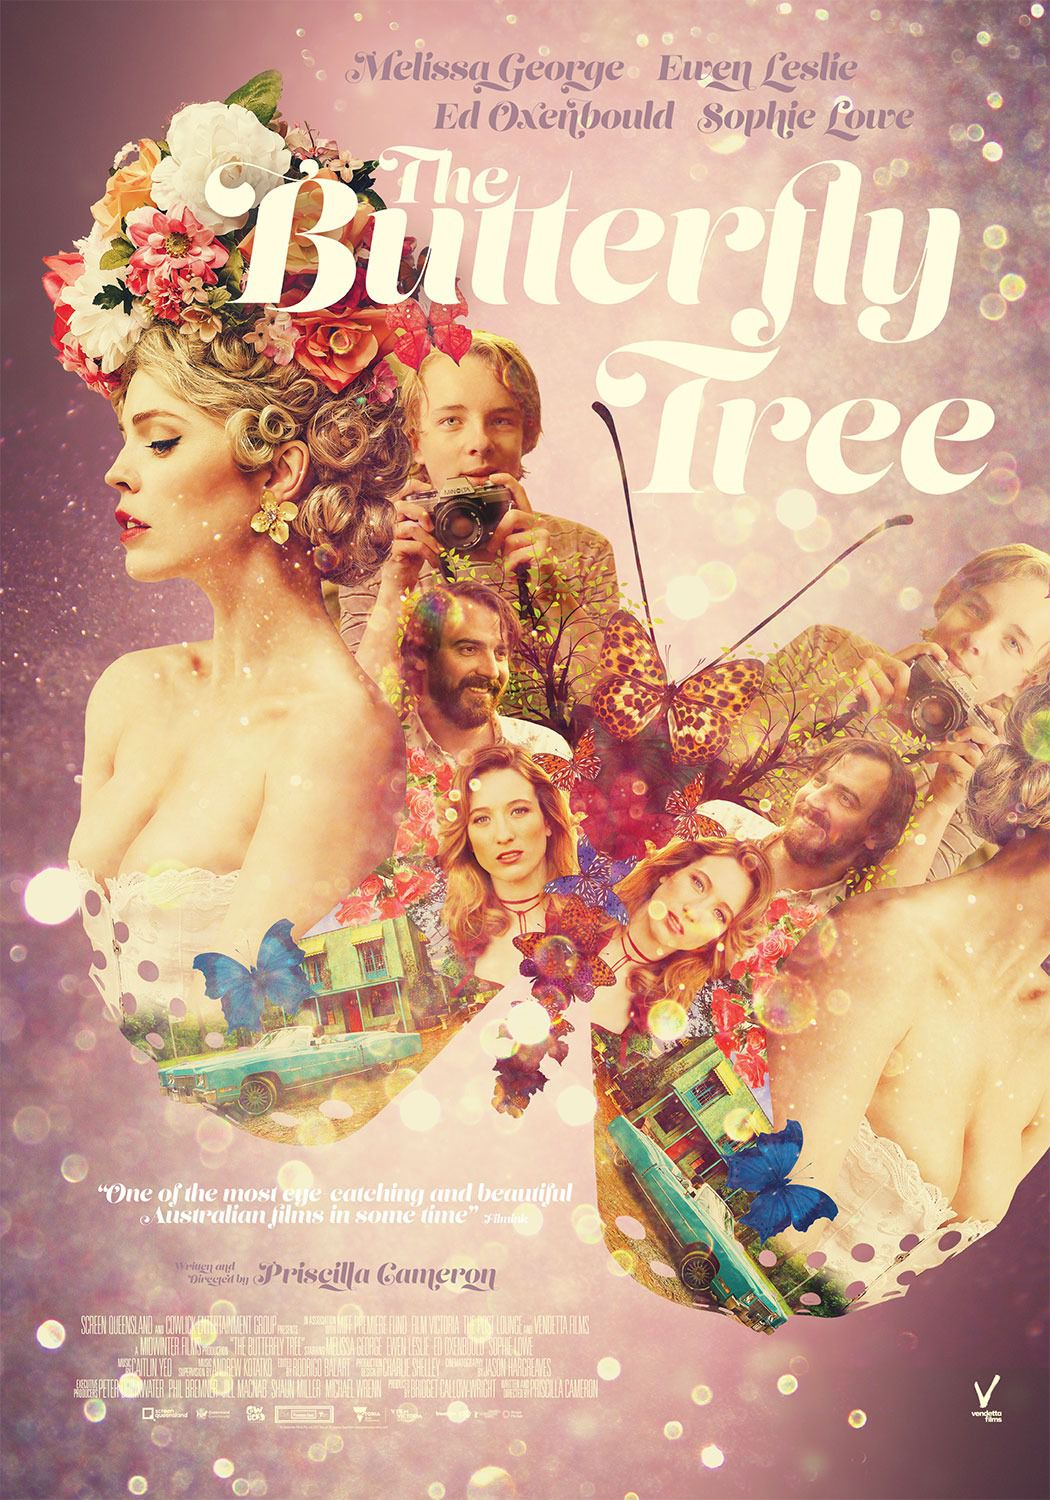 The Butterfly Tree - Albero delle Farfalle - Cast: Melissa George, Ewen Leslie, Ed Oxenbould, Sophie Love - film poster